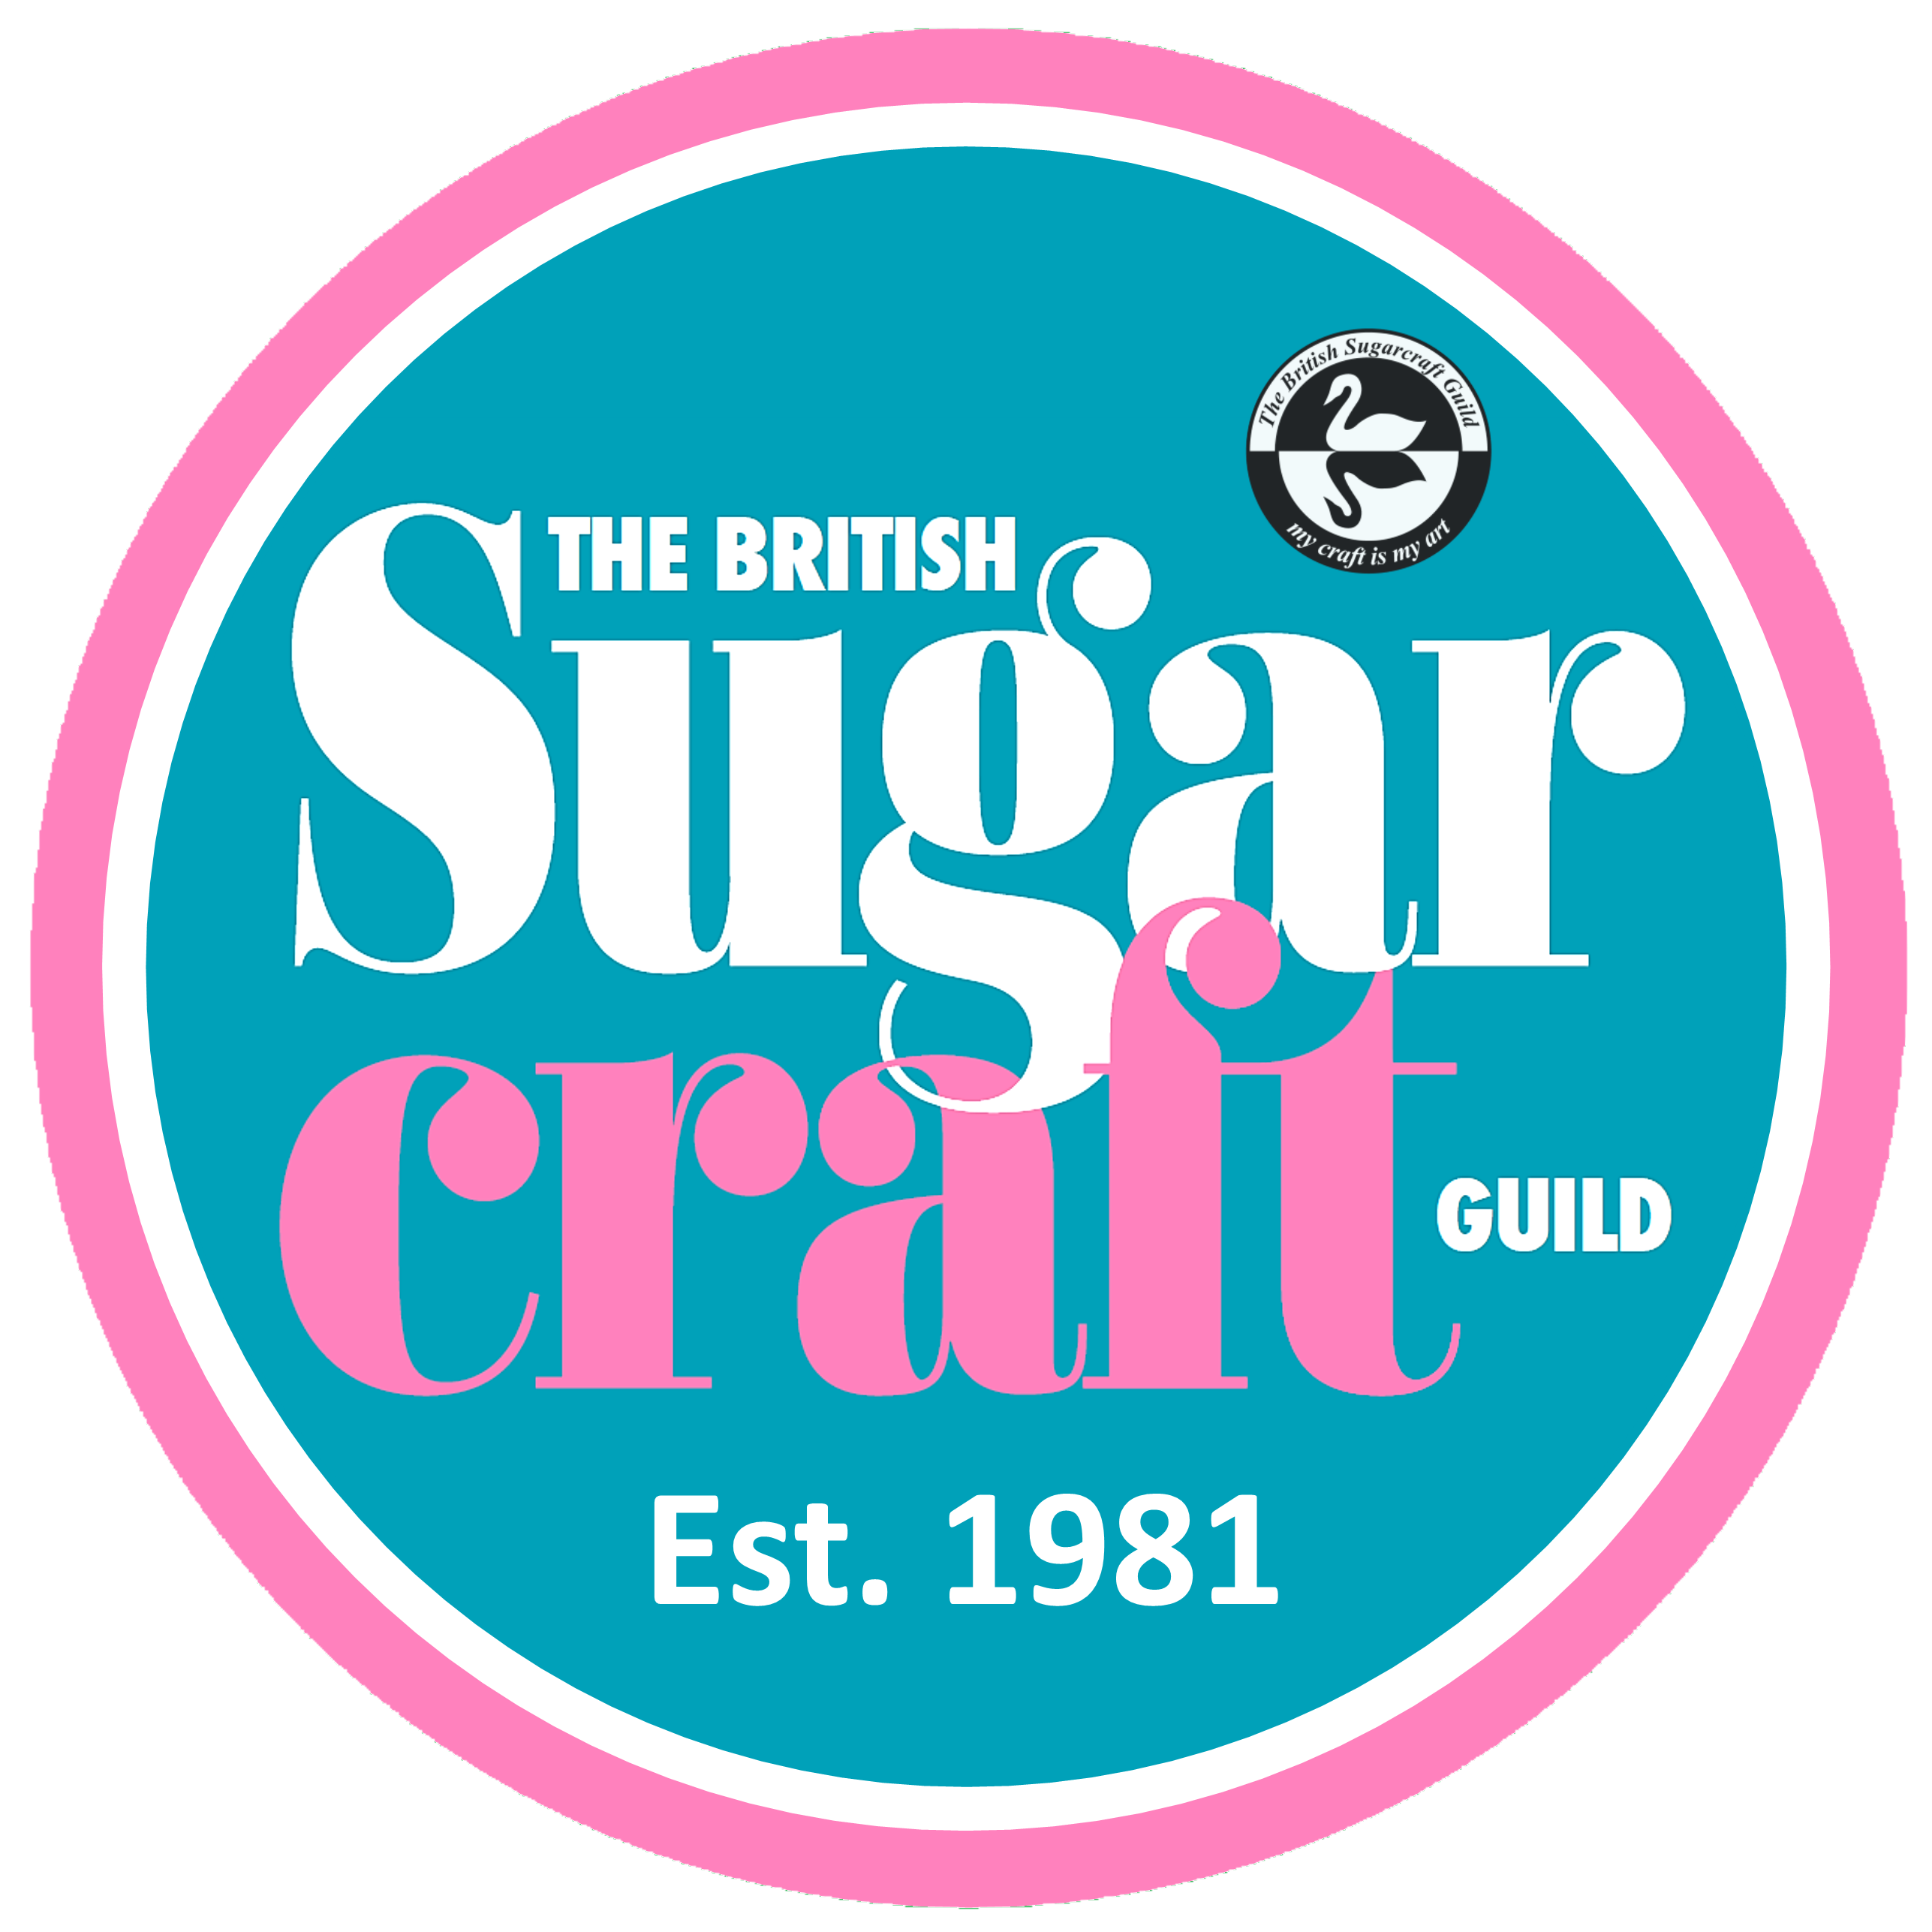 The British Sugarcraft Guild (BSG)